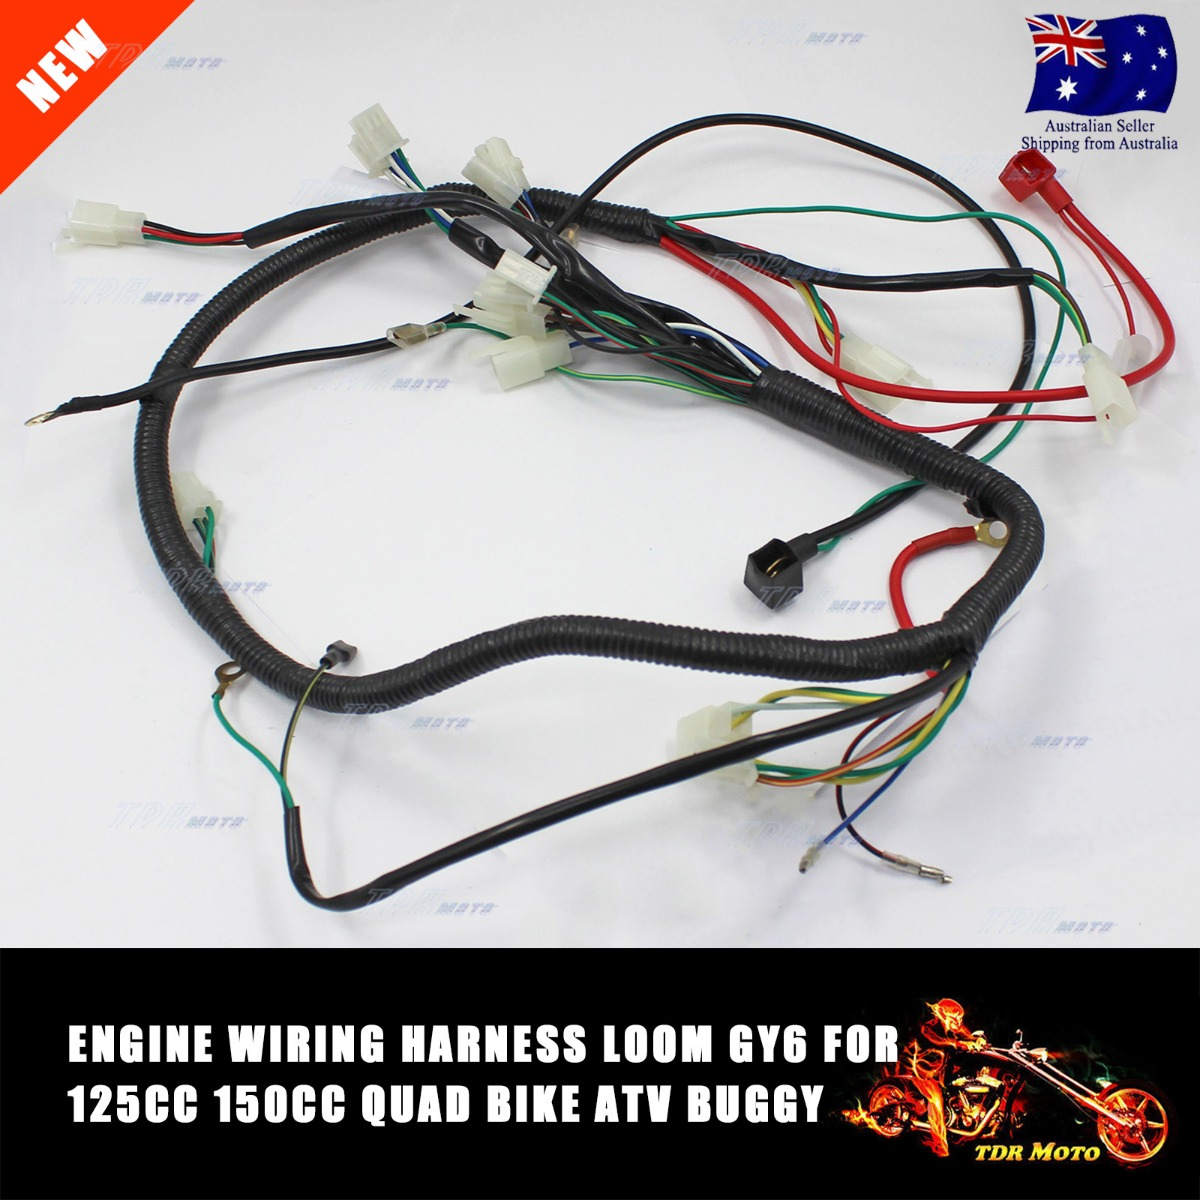 Boxer Go Kart Wiring Harness Diagrams Electrical Diagram 250cc Dune Buggy Wire Loom 150cc 200cc 300cc Atv Quad Gy6